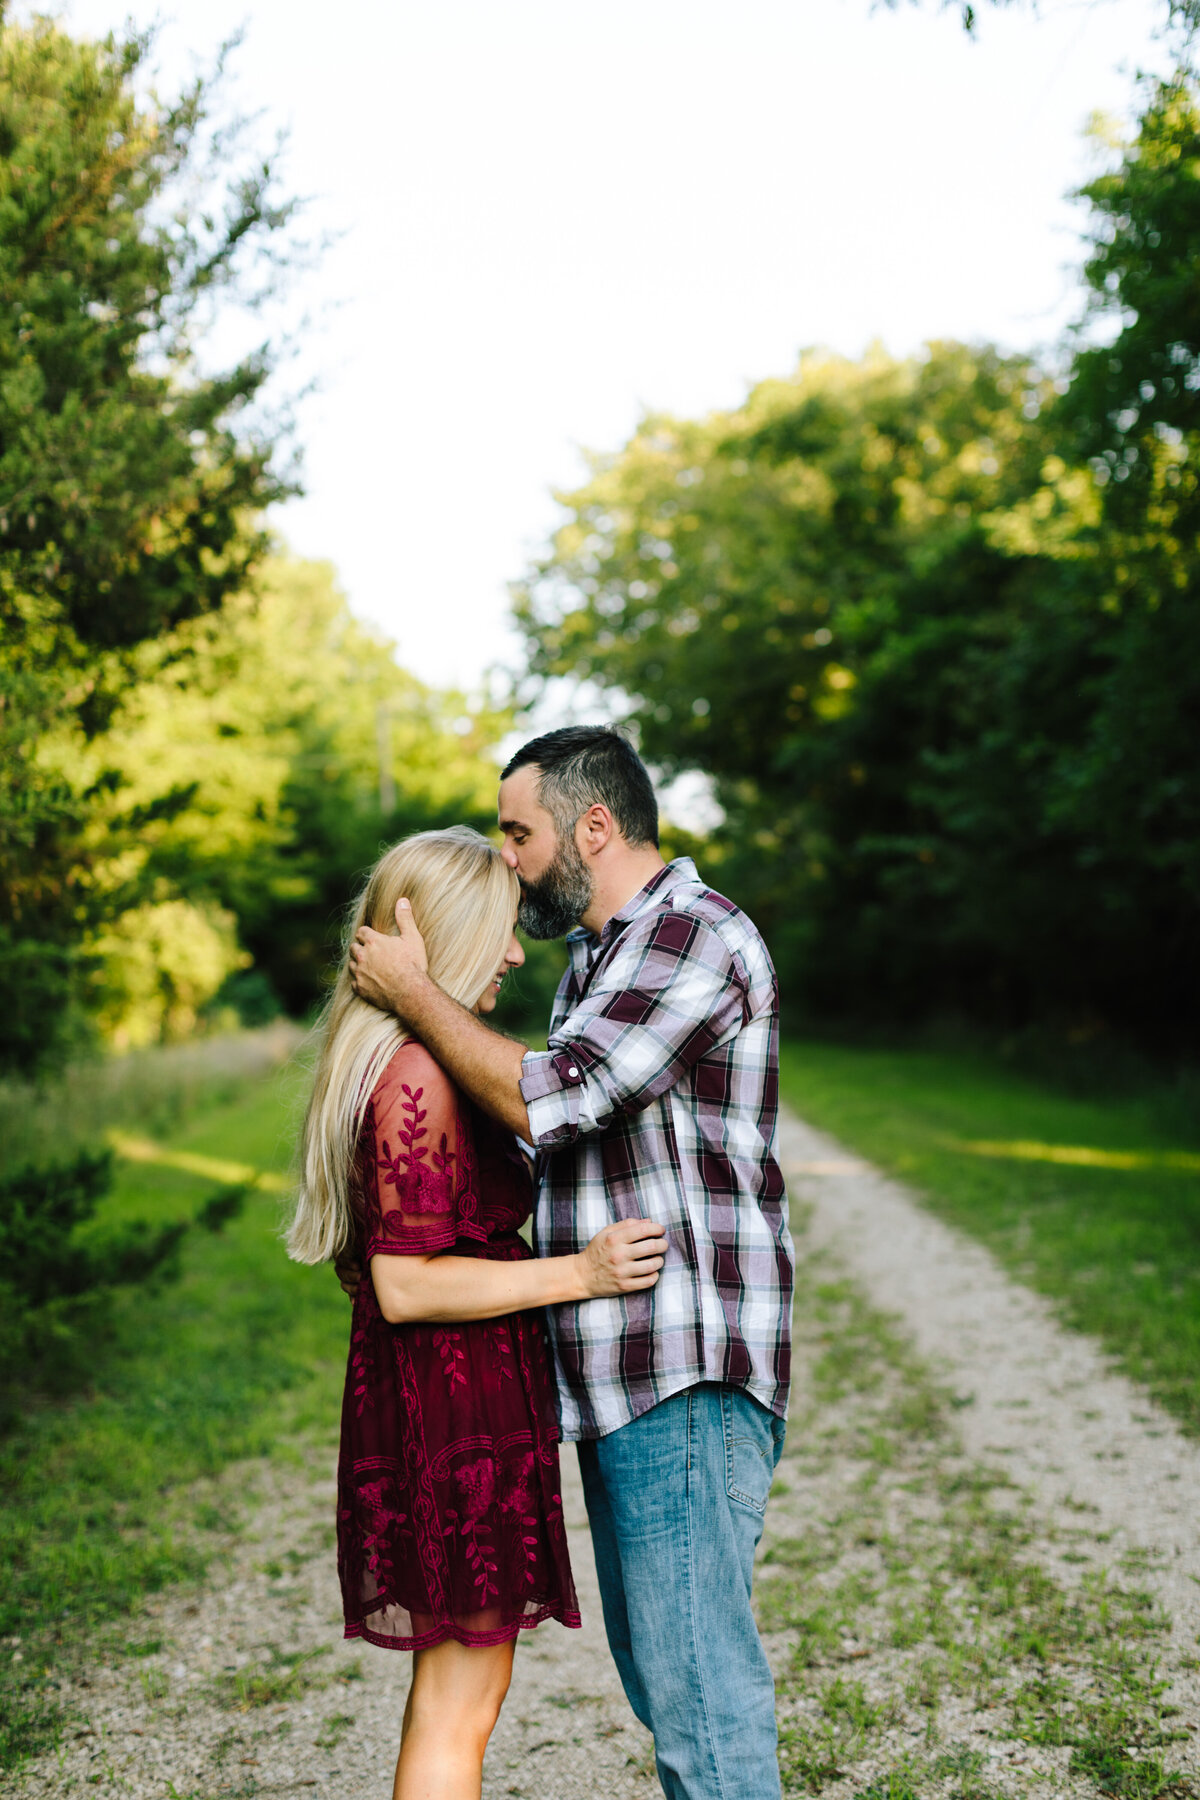 Kansas-City-Engagement-Photographer-Natalie-Nichole-Photography-68